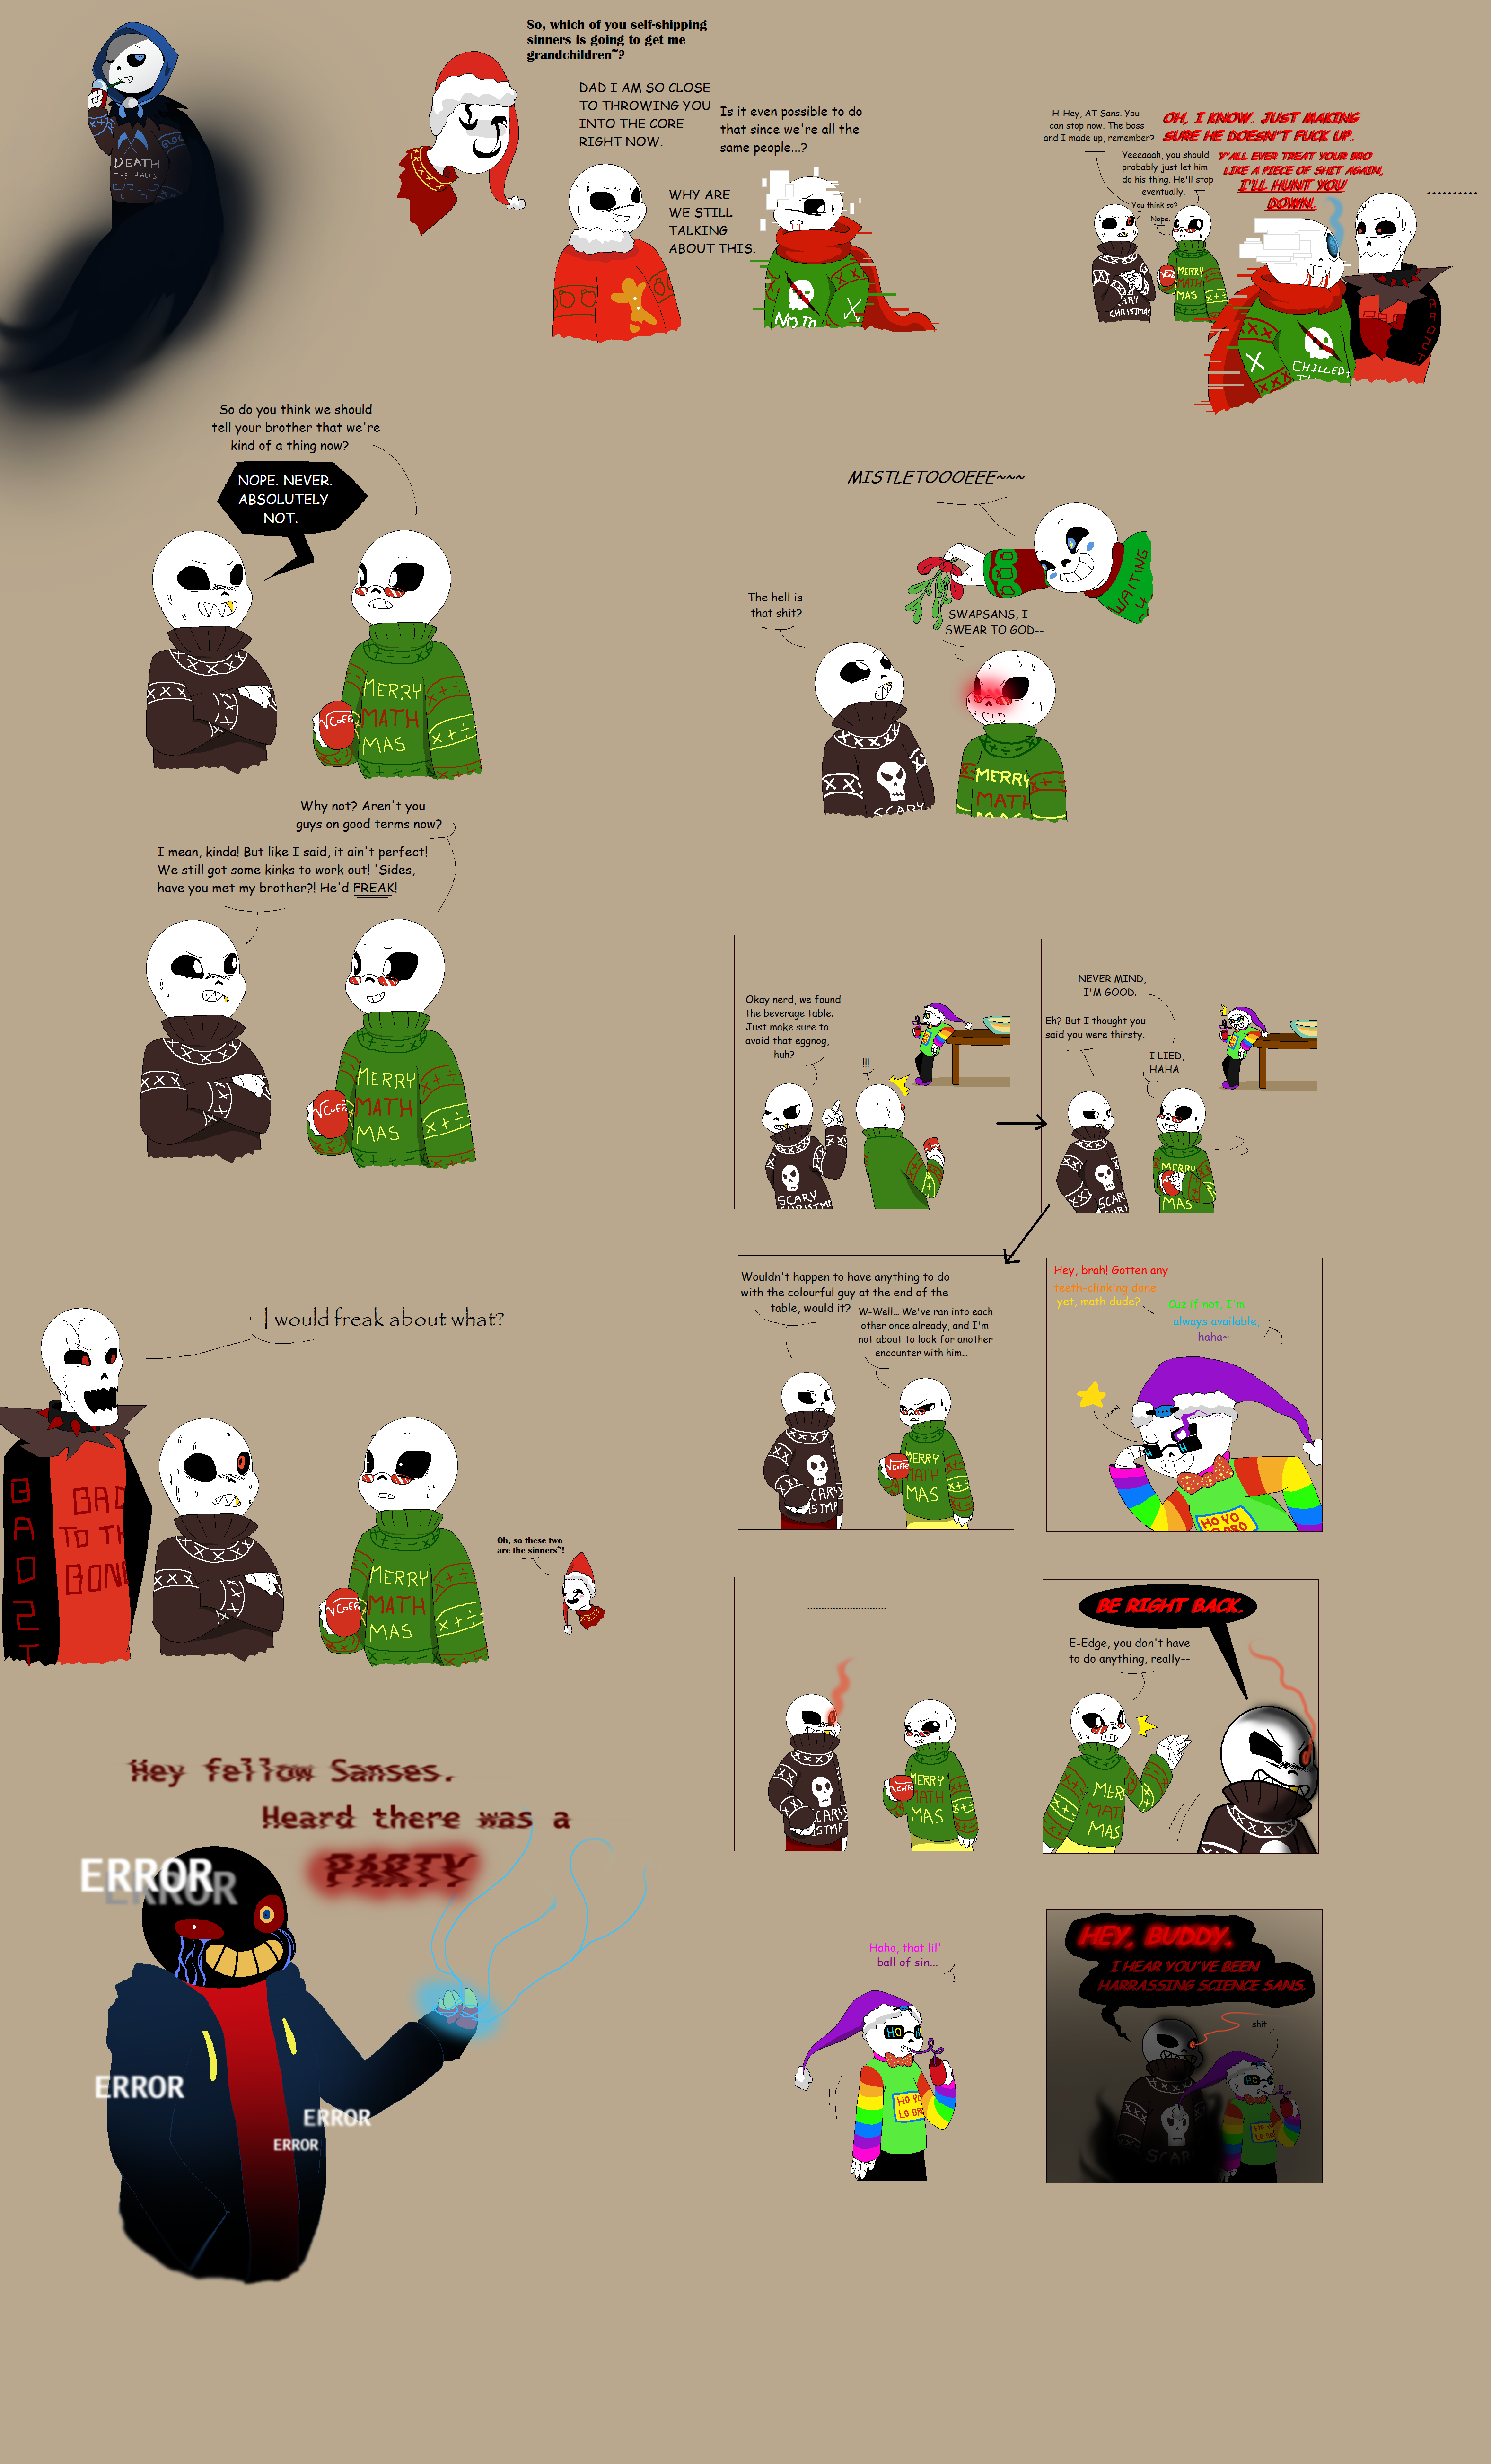 Christmas Party Au Comic.Christmas Party Au Doodles By Quilaviper On Deviantart